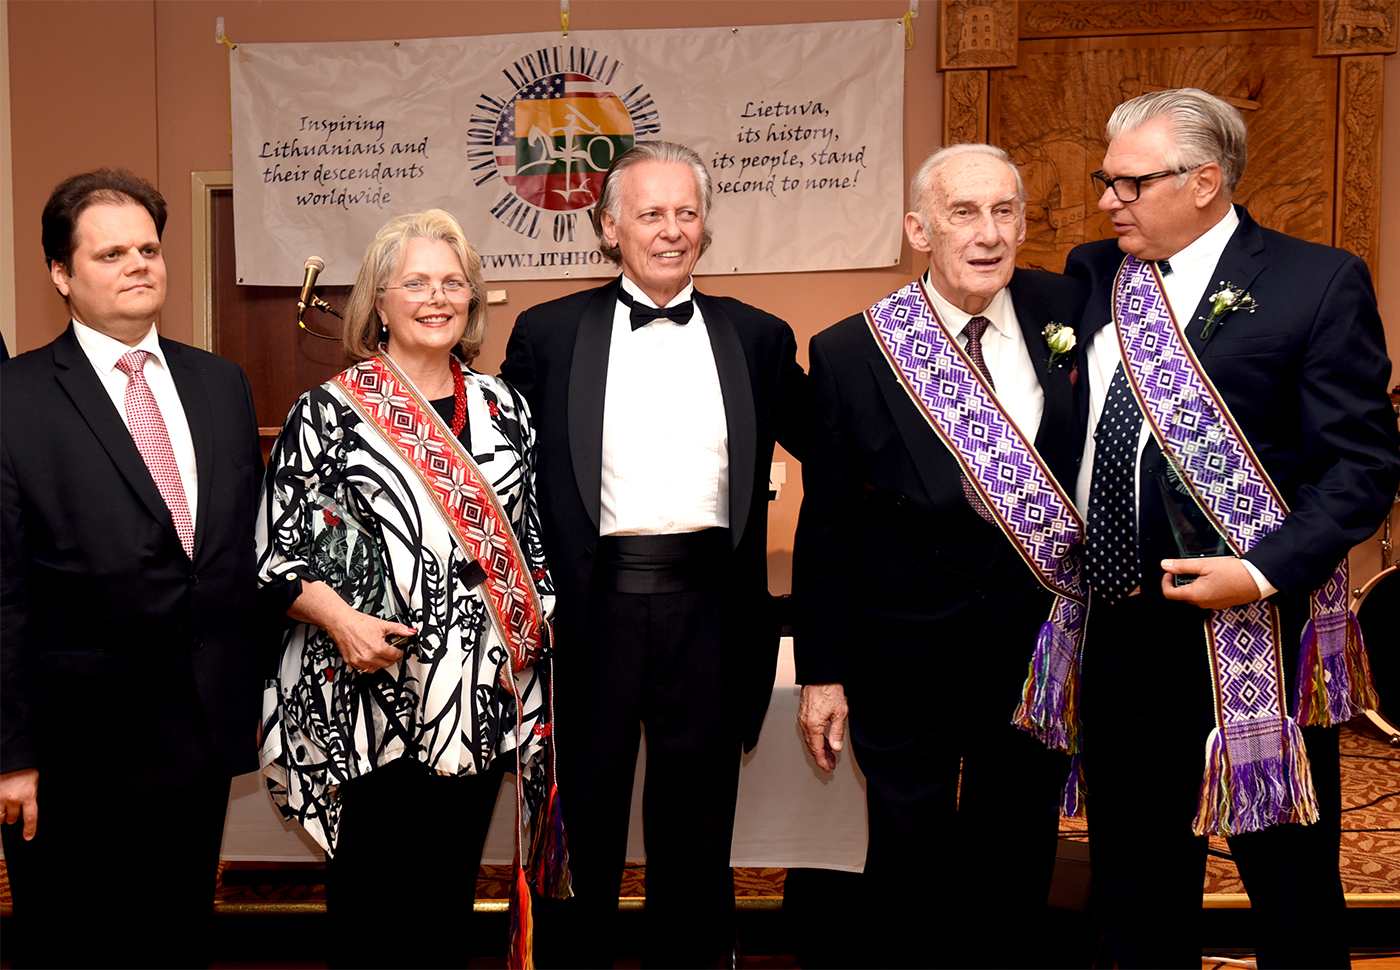 2015 National Lithuanian American Hall of Fame inductees: from left, actress Ann Jillian, NLAFH president Jon Platakis, solist Arnold Voketaitis and actor Vyto Ruginis.